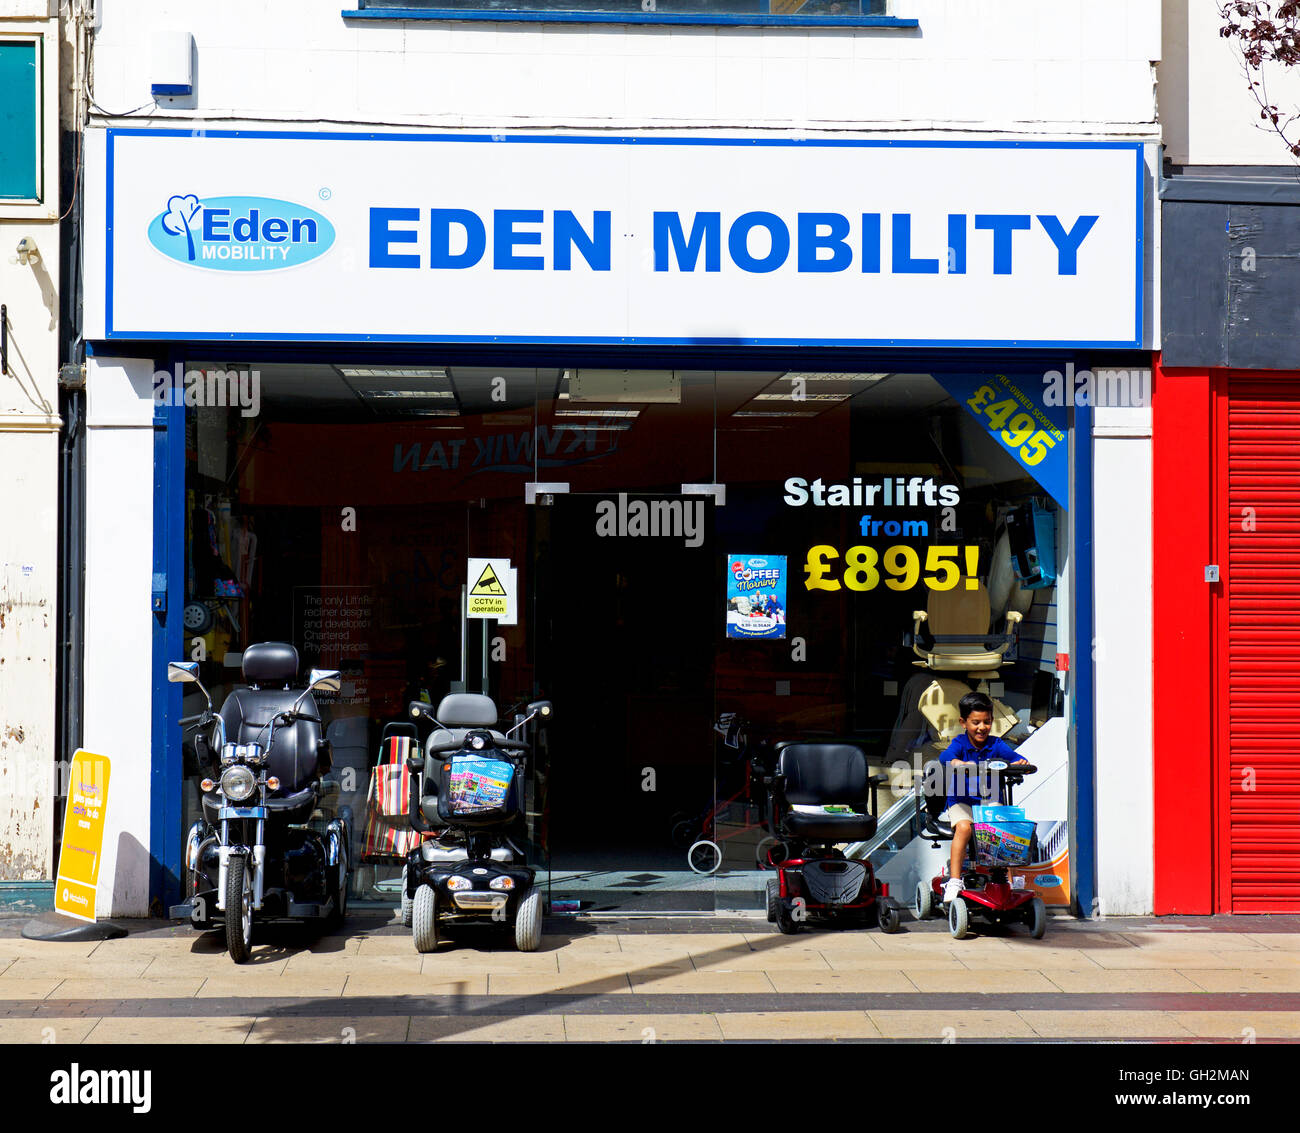 Shop - Eden Mobility - selling mobility scooters, England UK - Stock Image